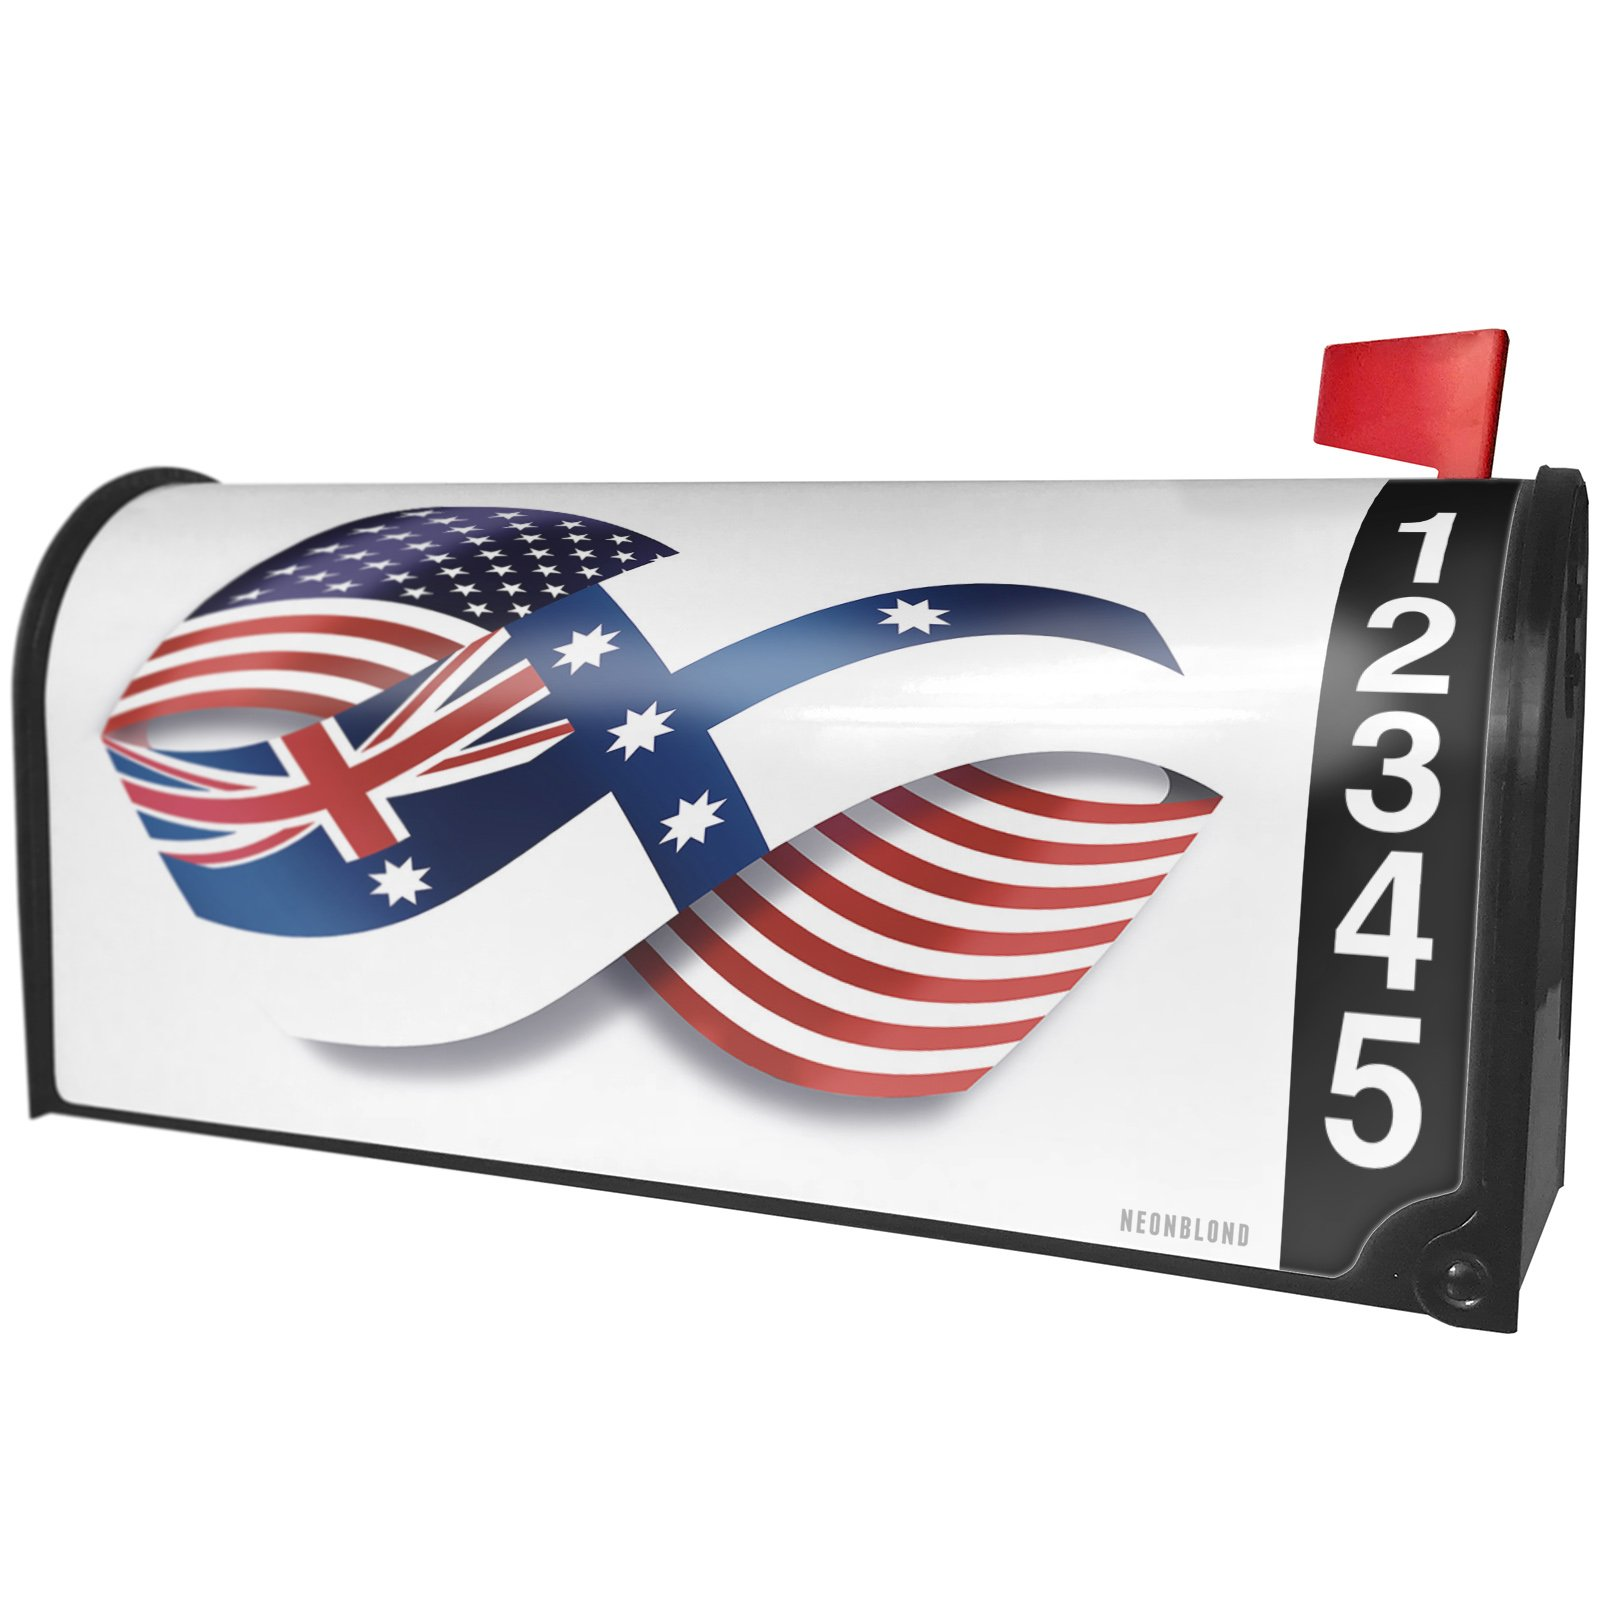 NEONBLOND Infinity Flags USA and New South Wales (Australian Federation) Magnetic Mailbox Cover Custom Numbers